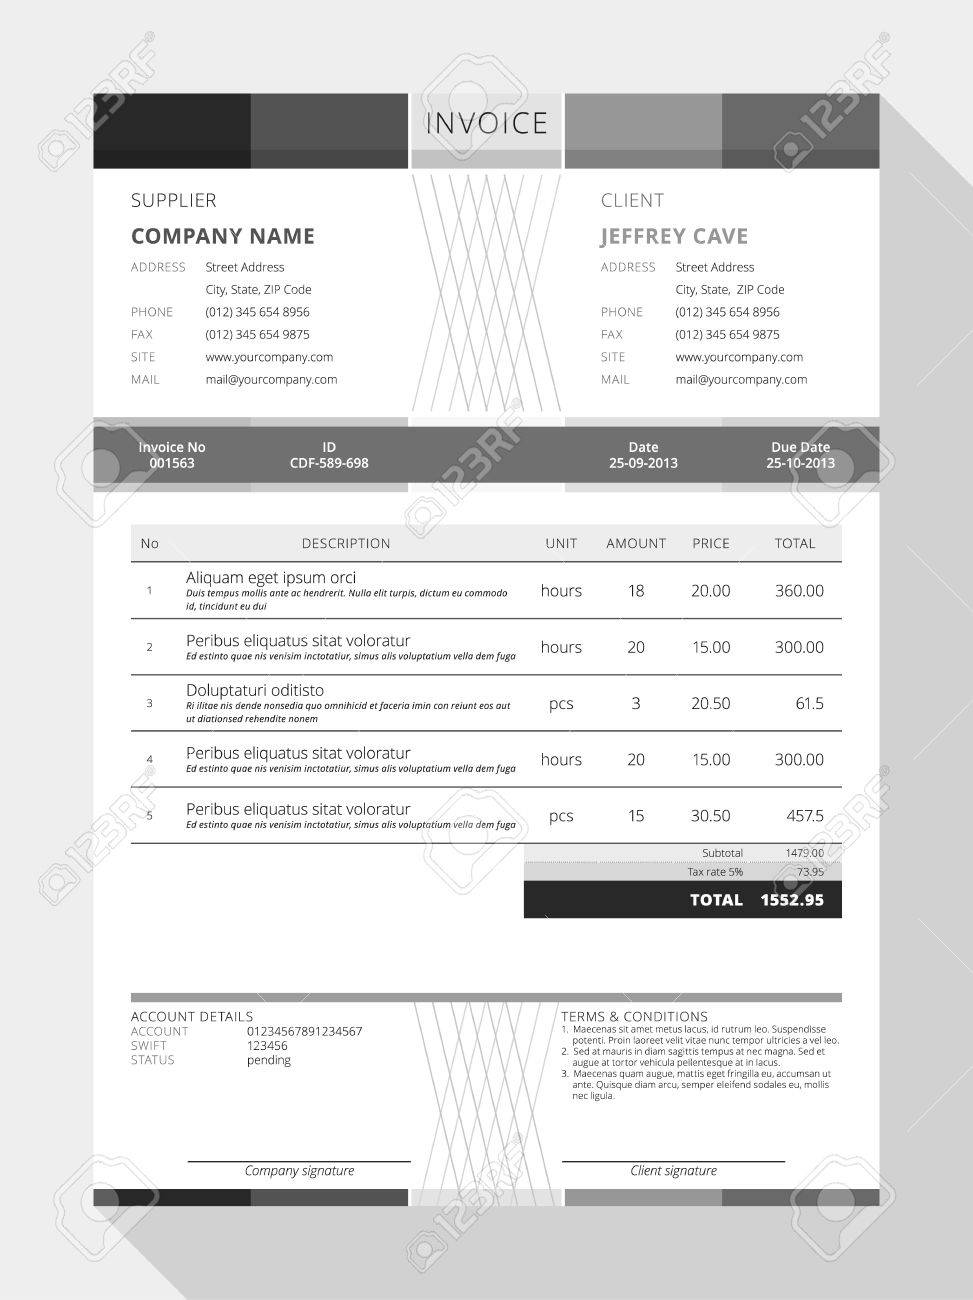 Imagerackus  Remarkable Design An Invoice  Professional Graphic Design Invoice  With Goodlooking Vector Customizable Invoice Form Template Design Vector   Design An Invoice With Charming Lodging Receipt Template Also Chicken Wings Receipt In Addition Earnest Money Receipt Agreement And Receipt Numbers As Well As Global Depository Receipts Meaning Additionally Ocr For Receipts From Happytomco With Imagerackus  Goodlooking Design An Invoice  Professional Graphic Design Invoice  With Charming Vector Customizable Invoice Form Template Design Vector   Design An Invoice And Remarkable Lodging Receipt Template Also Chicken Wings Receipt In Addition Earnest Money Receipt Agreement From Happytomco